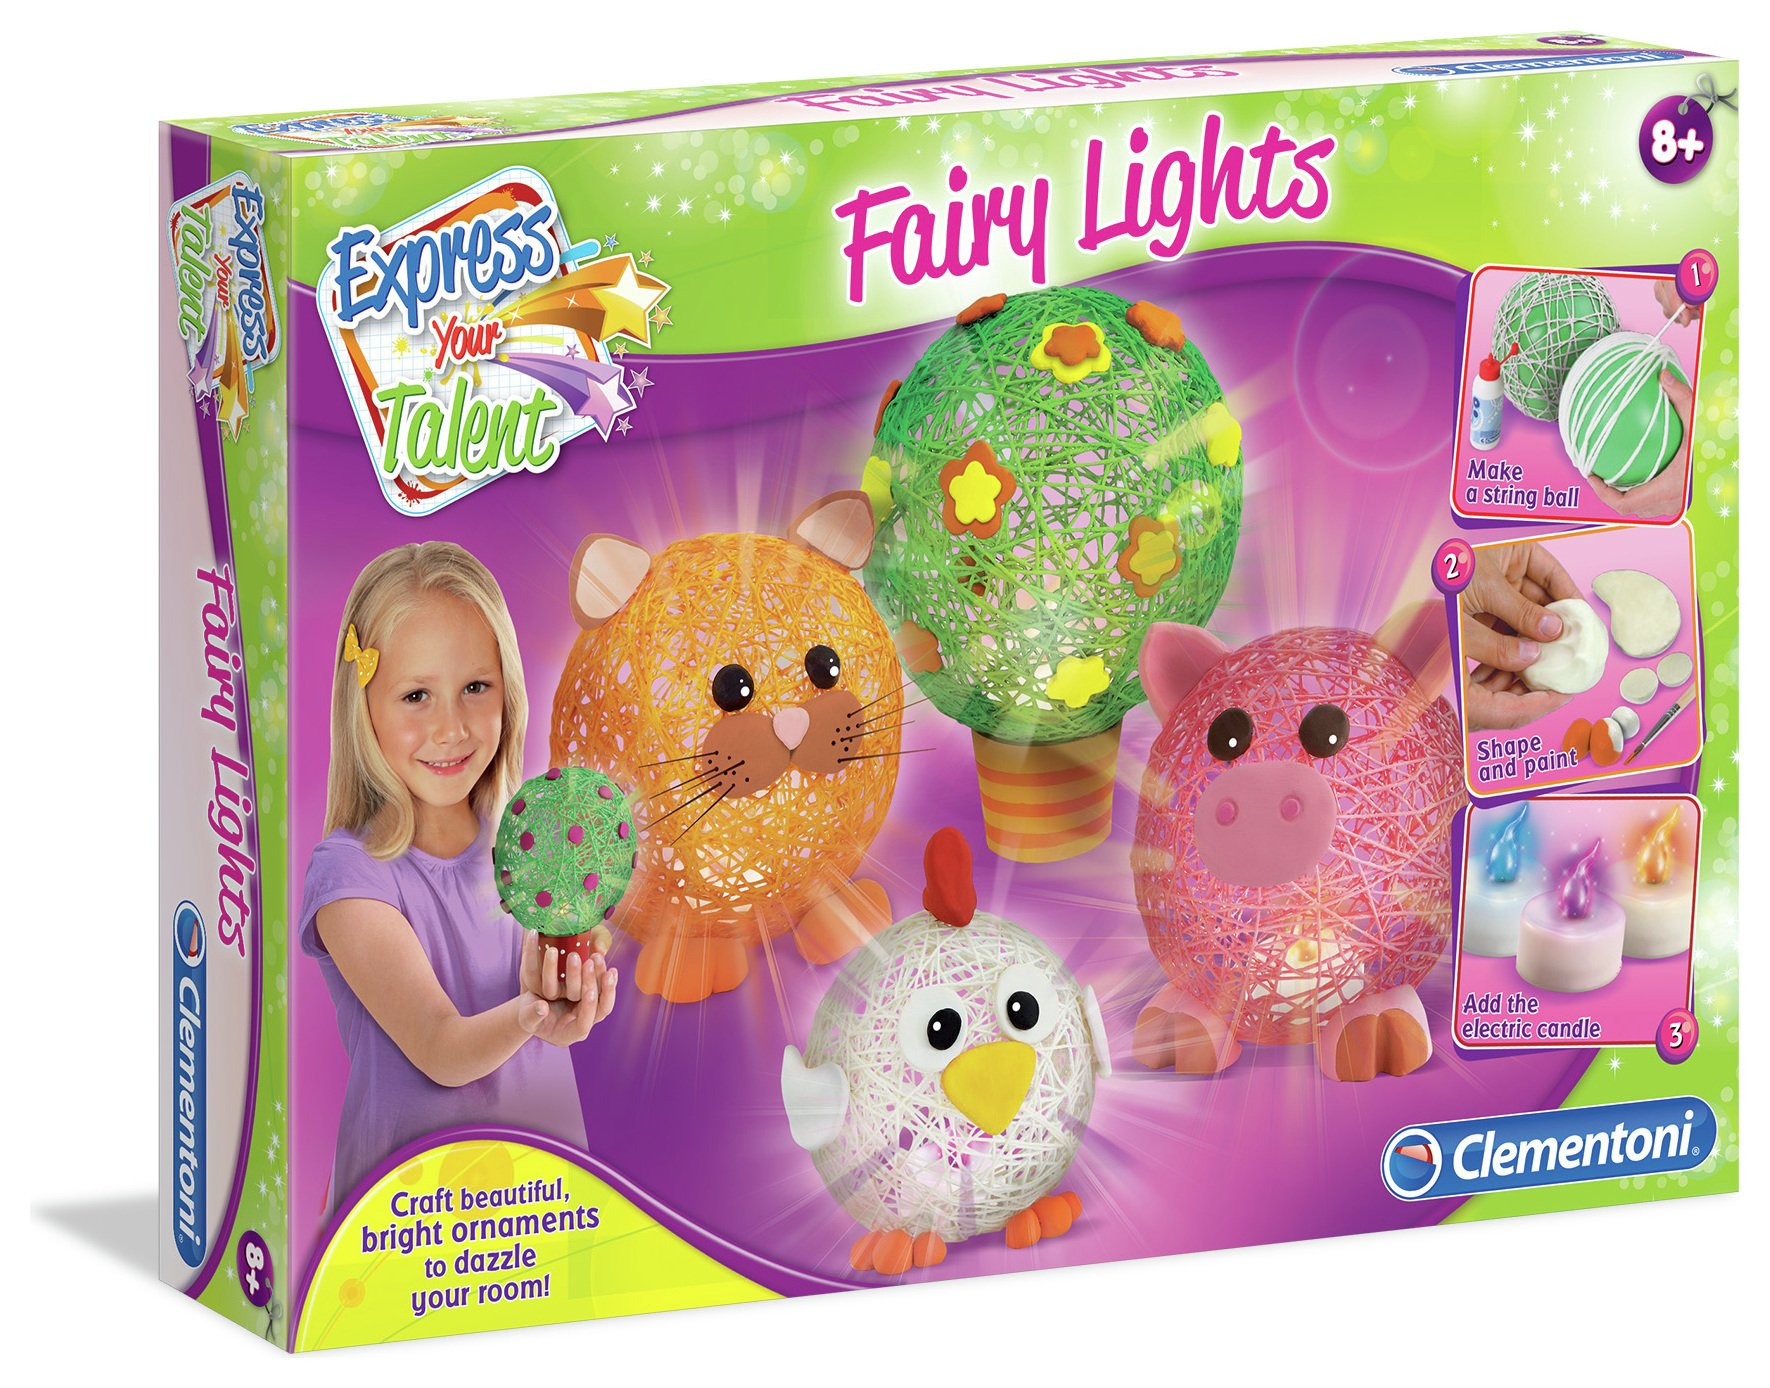 Image of Clementoni Express Your Talent - Fairy Lights.